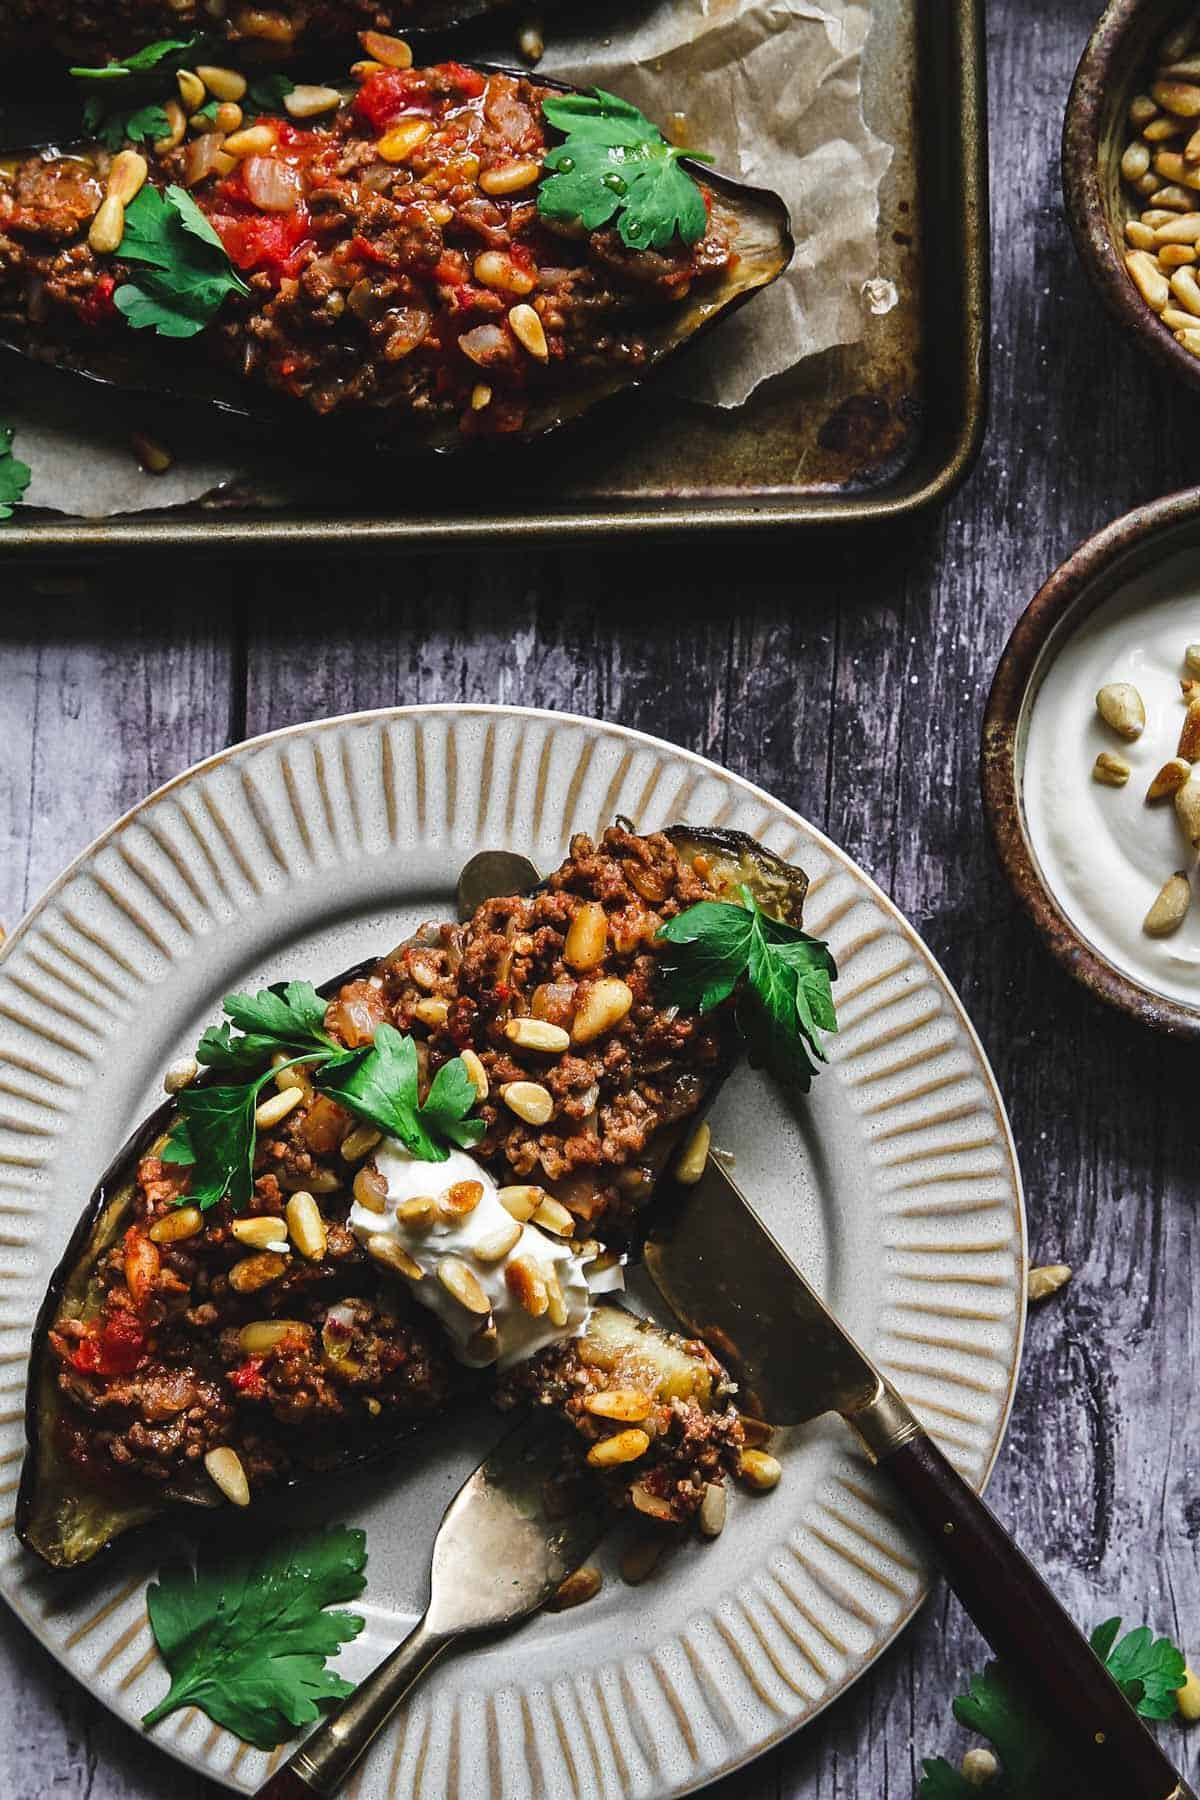 Roasted eggplant half stuffed with ground lamb and pine nuts topped with sour cream and parsley on a white plate.